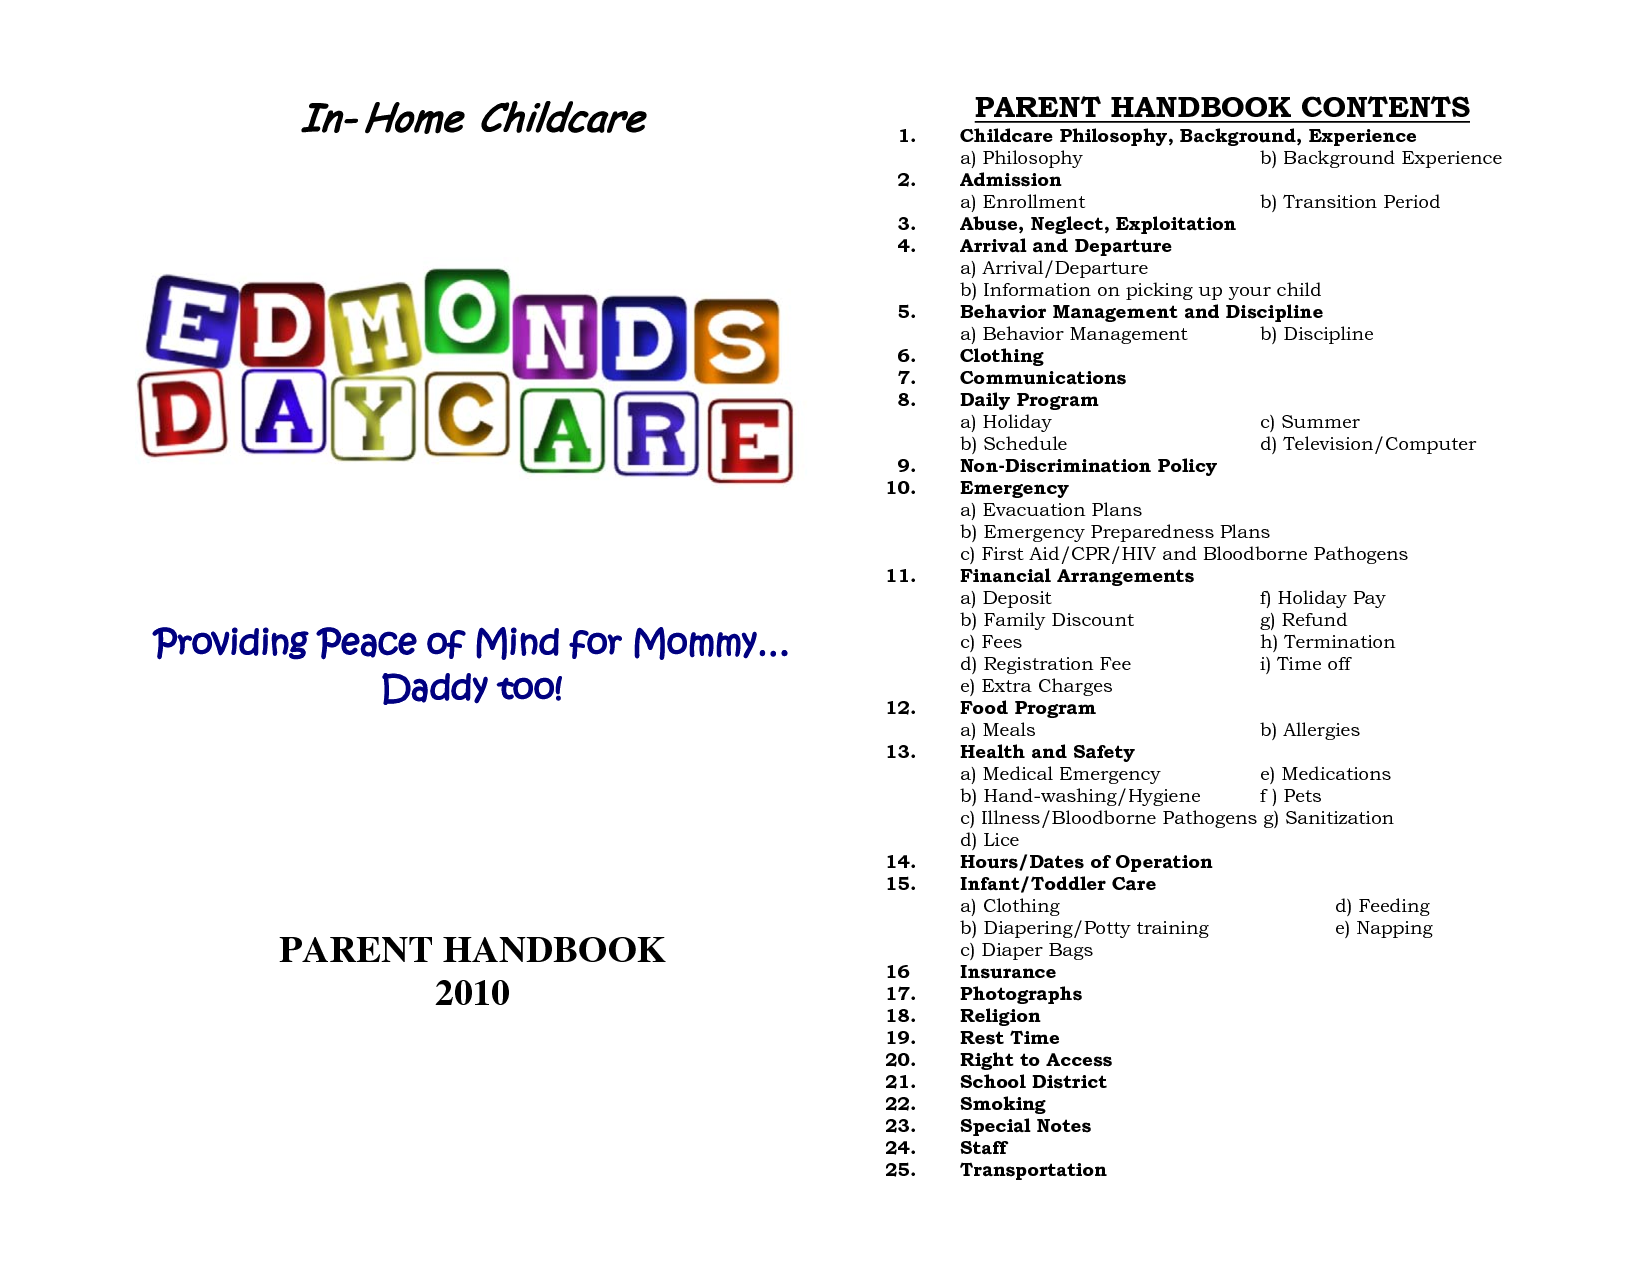 Home Daycare Schedule | In-Home Childcare | Daycare | Pinterest